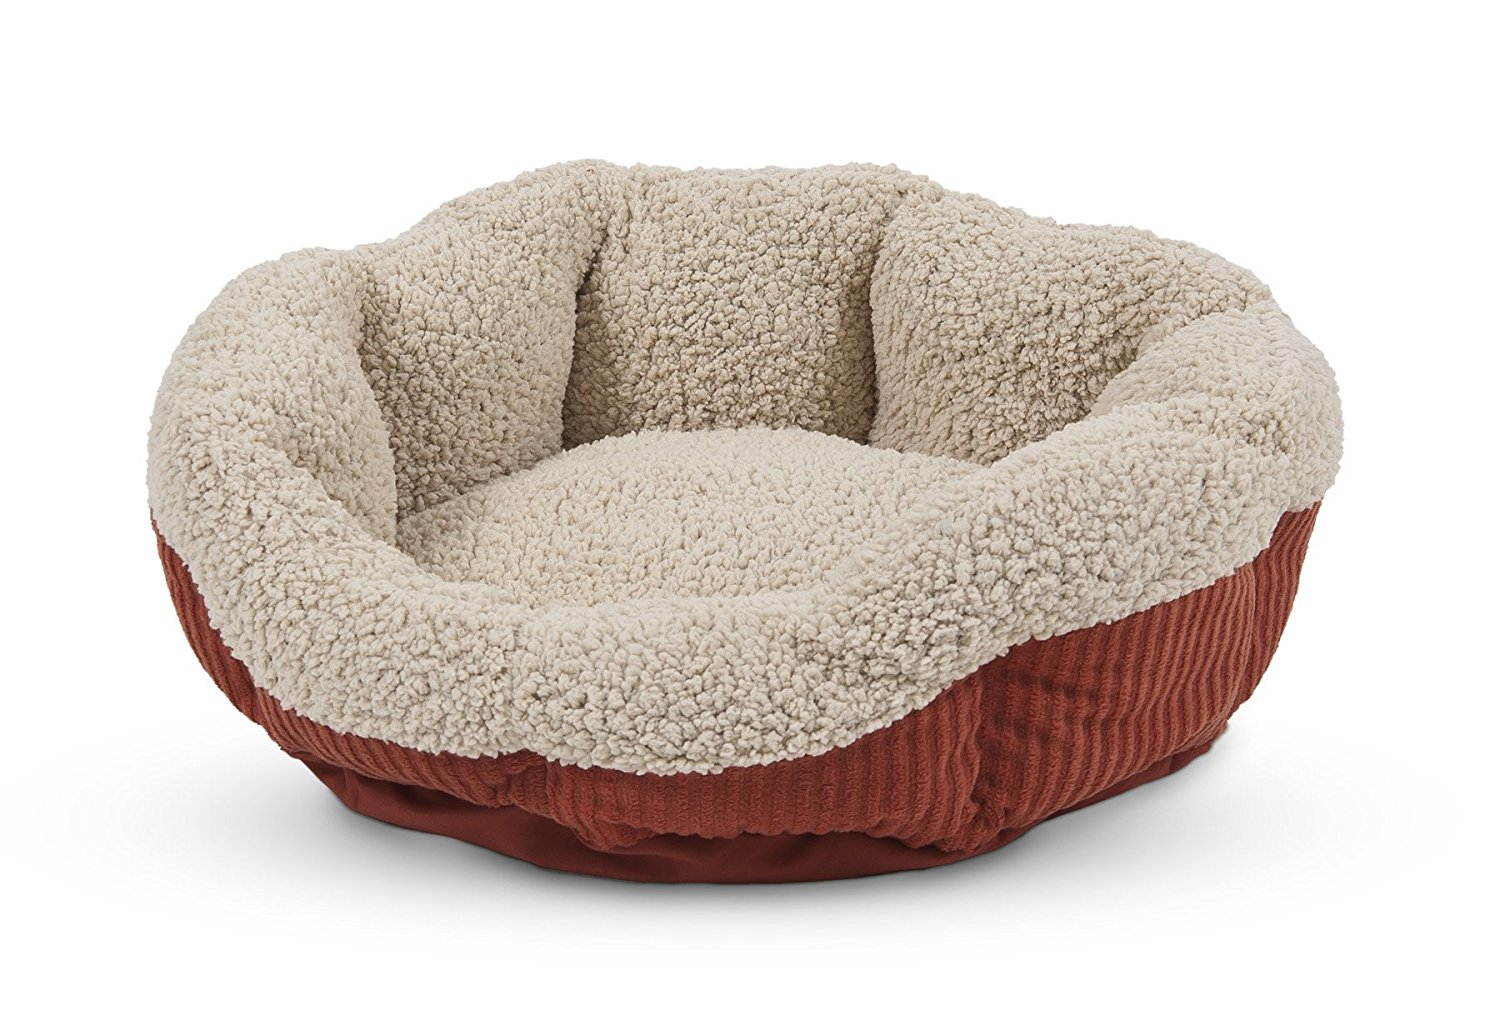 7.-Aspen-Pet-Self-Warming-Beds 10 Best Dog Beds for Small Dogs